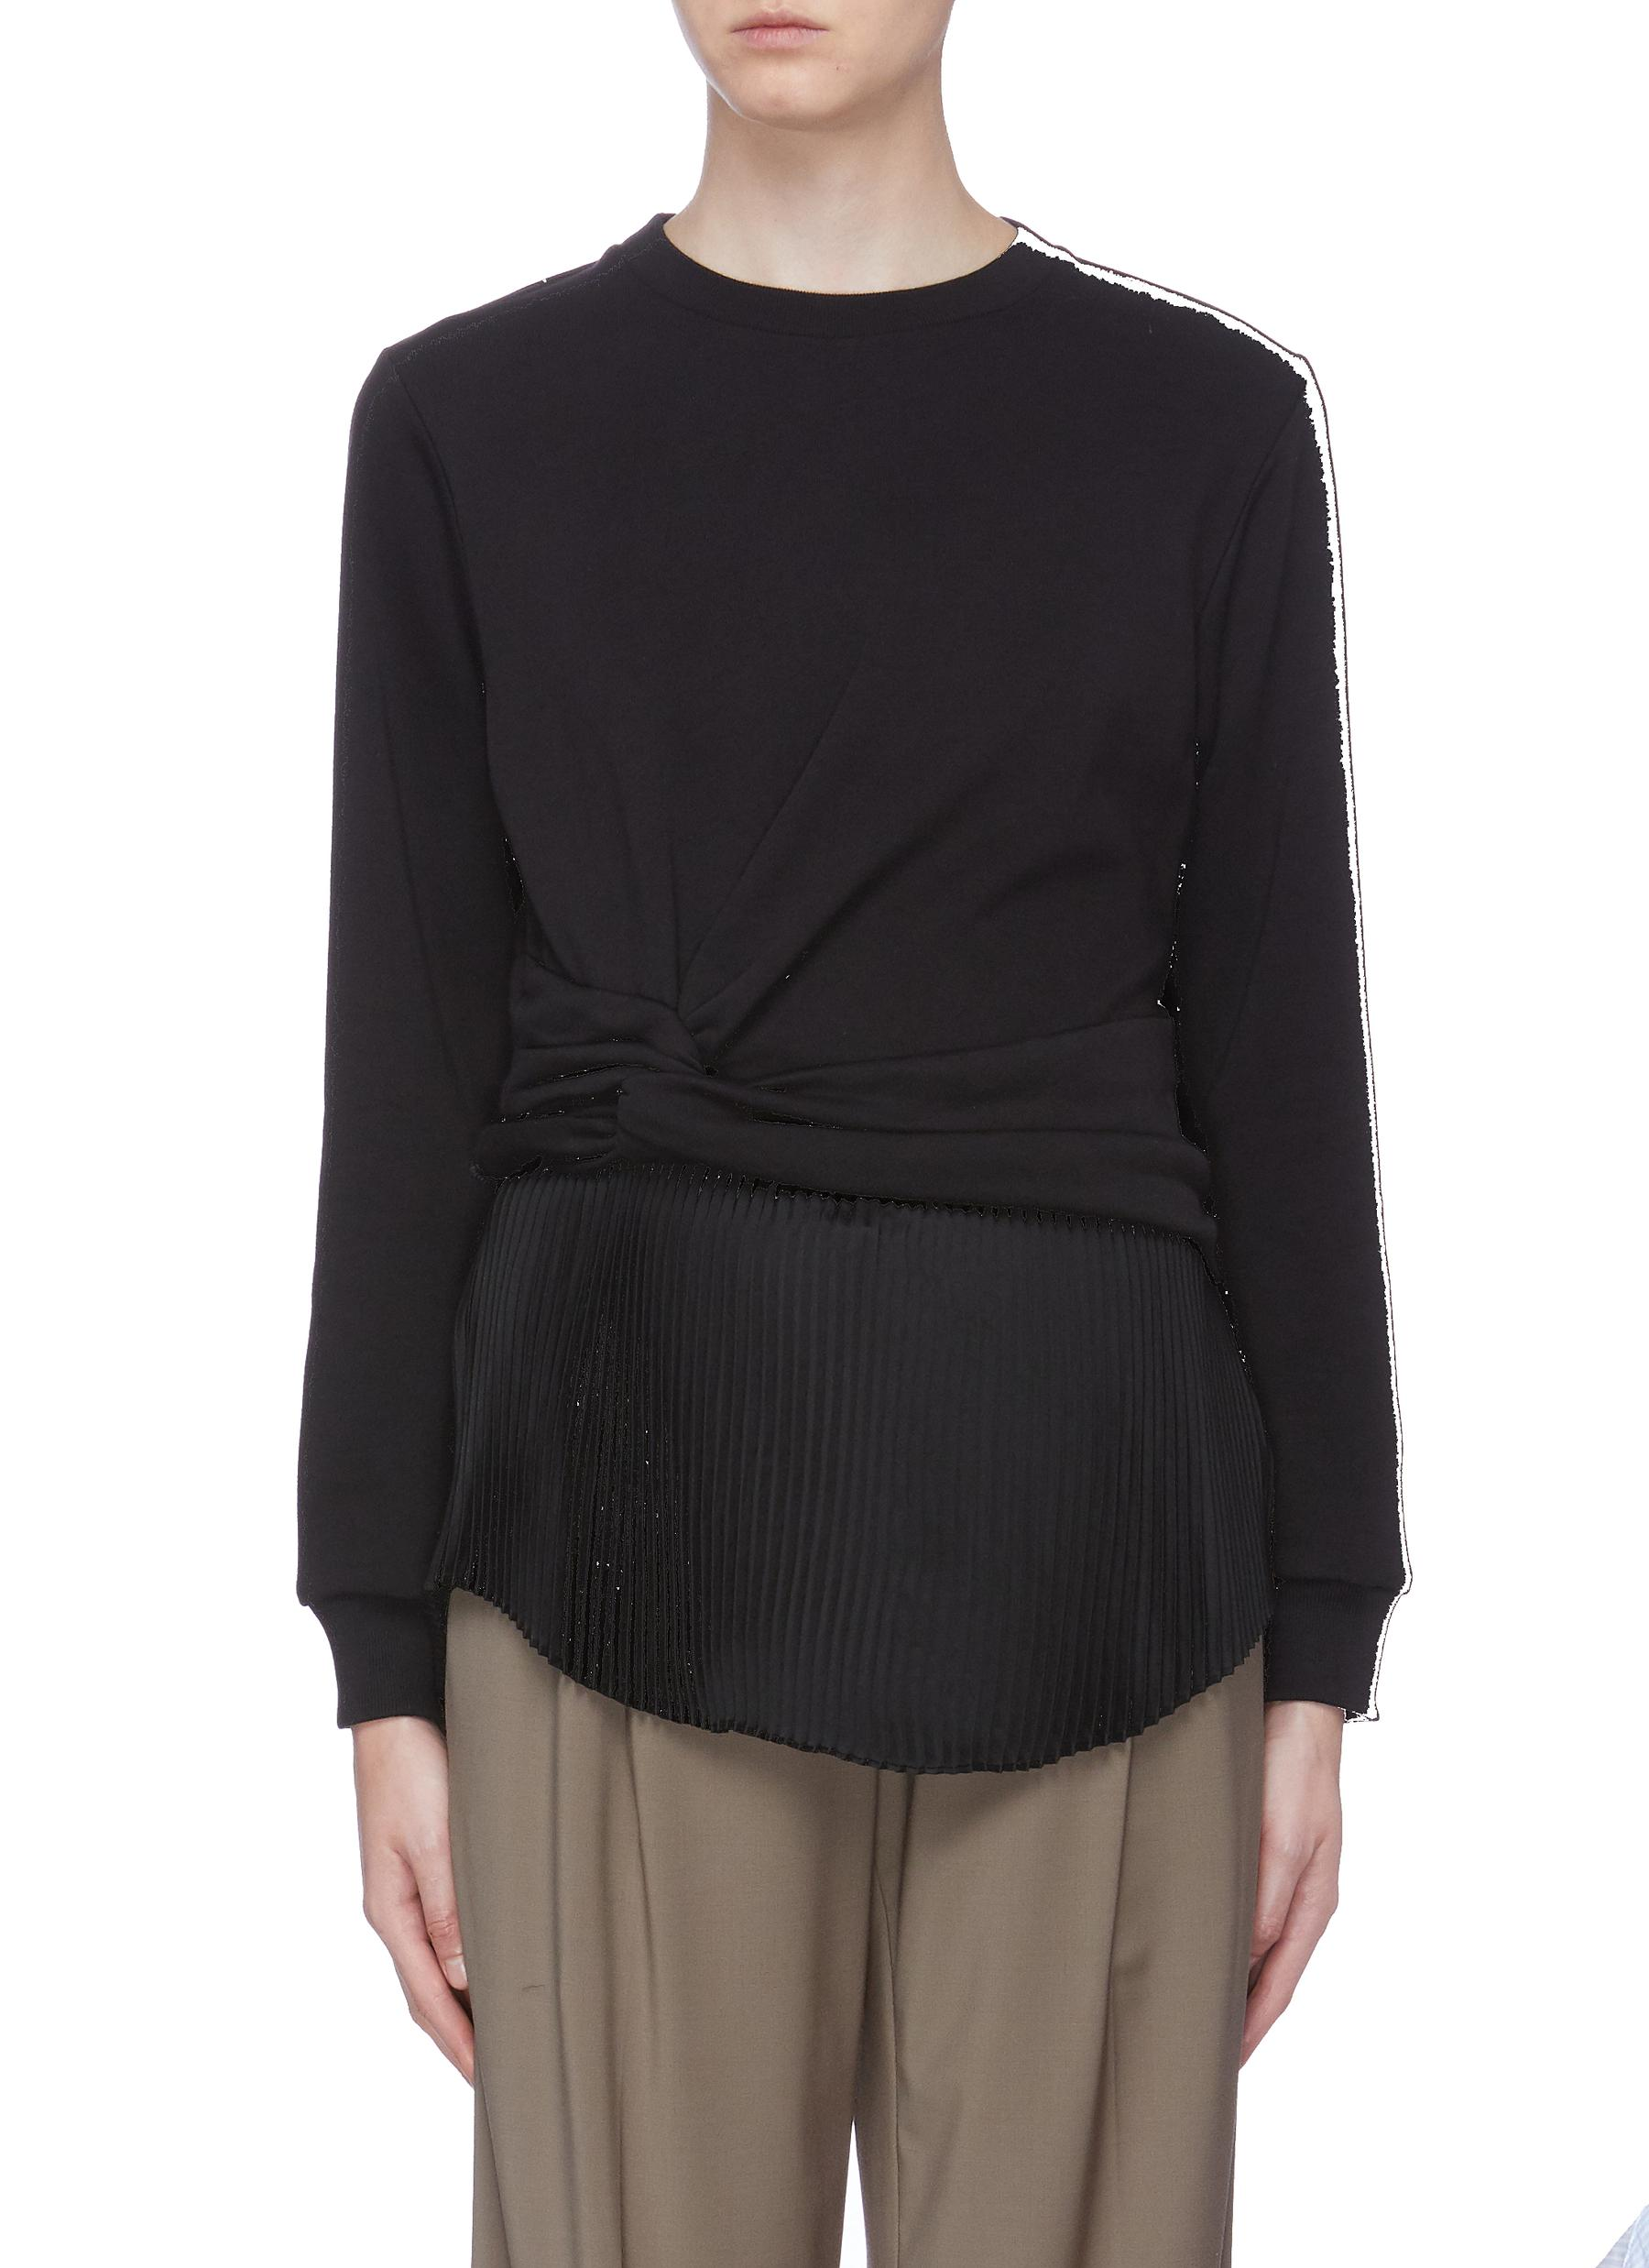 Knot side pleated underlay sweatshirt by 3.1 Phillip Lim